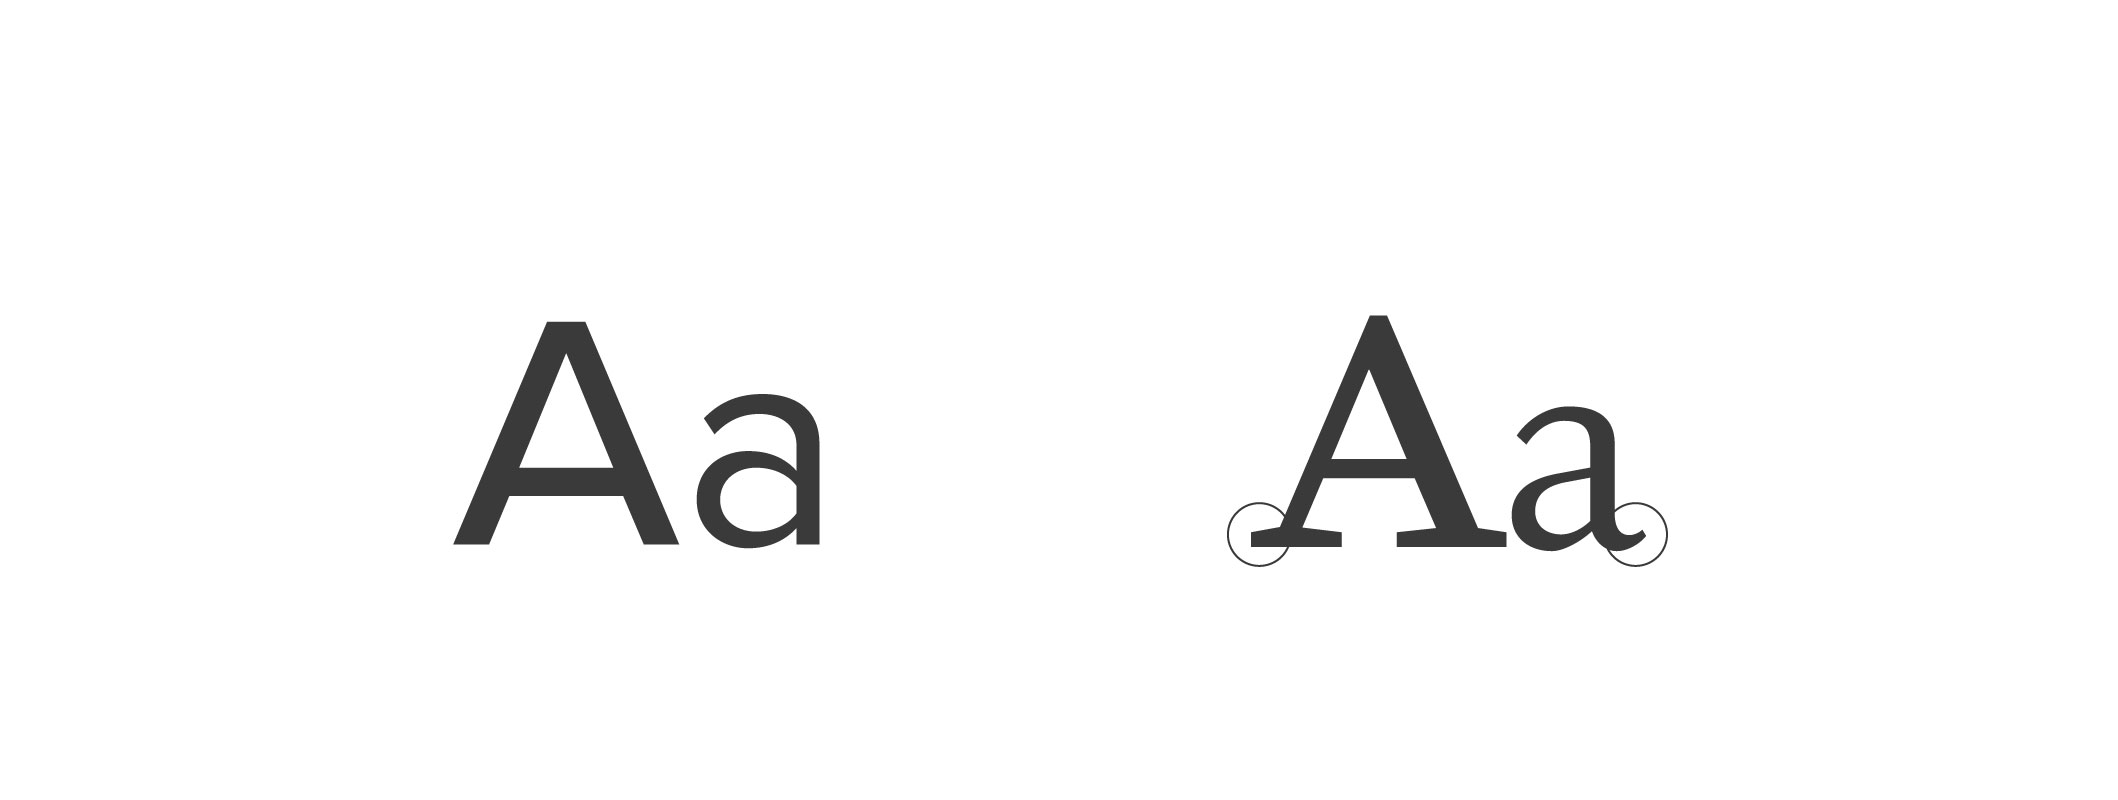 Example of serif font and sans serif font